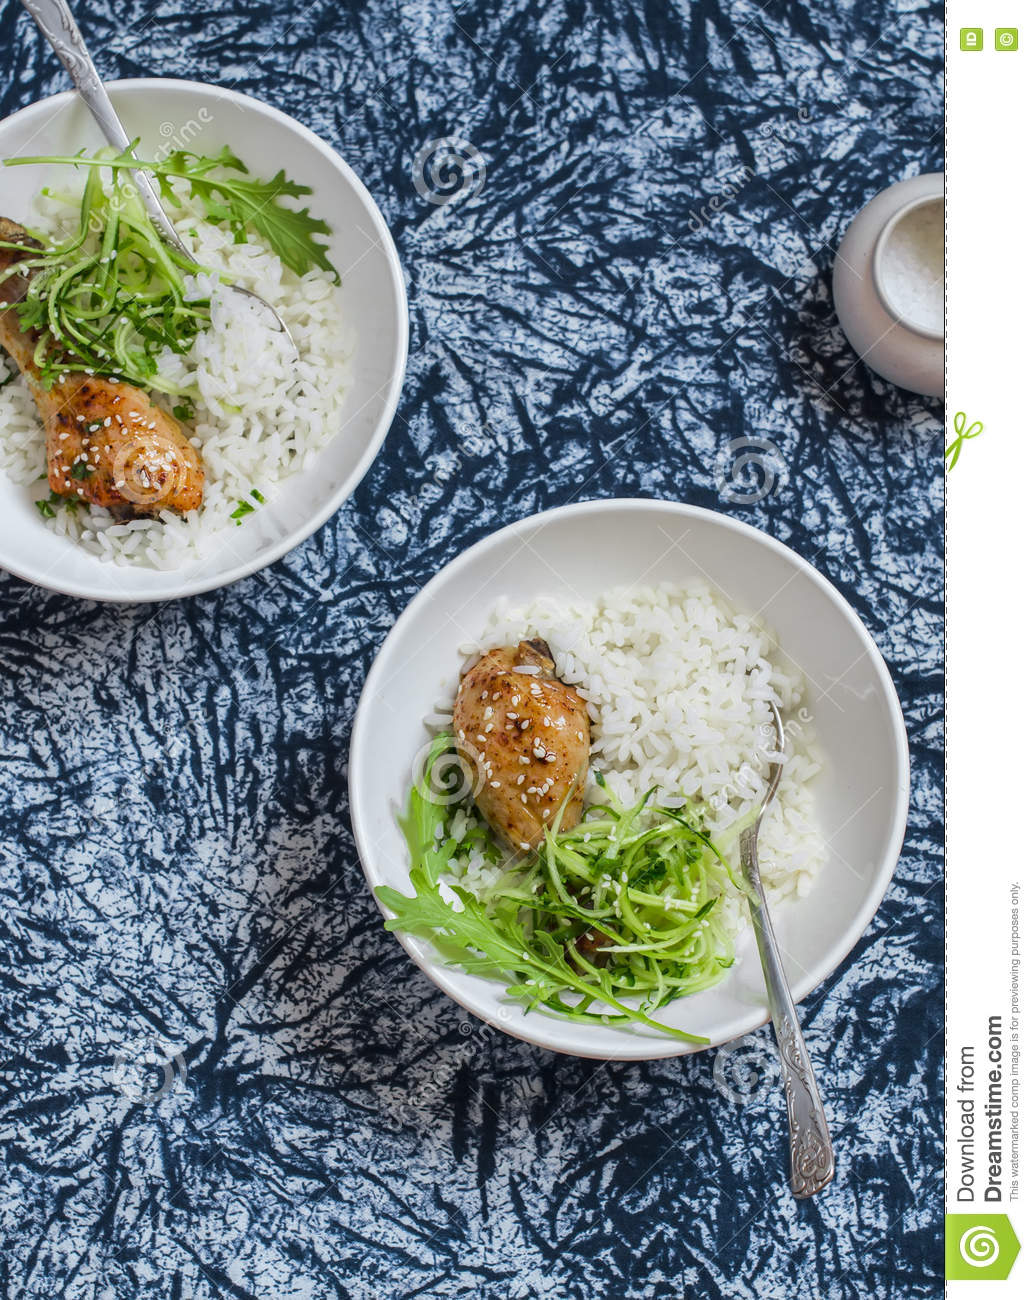 Rice, chicken and salad in a bowl on a dark background.